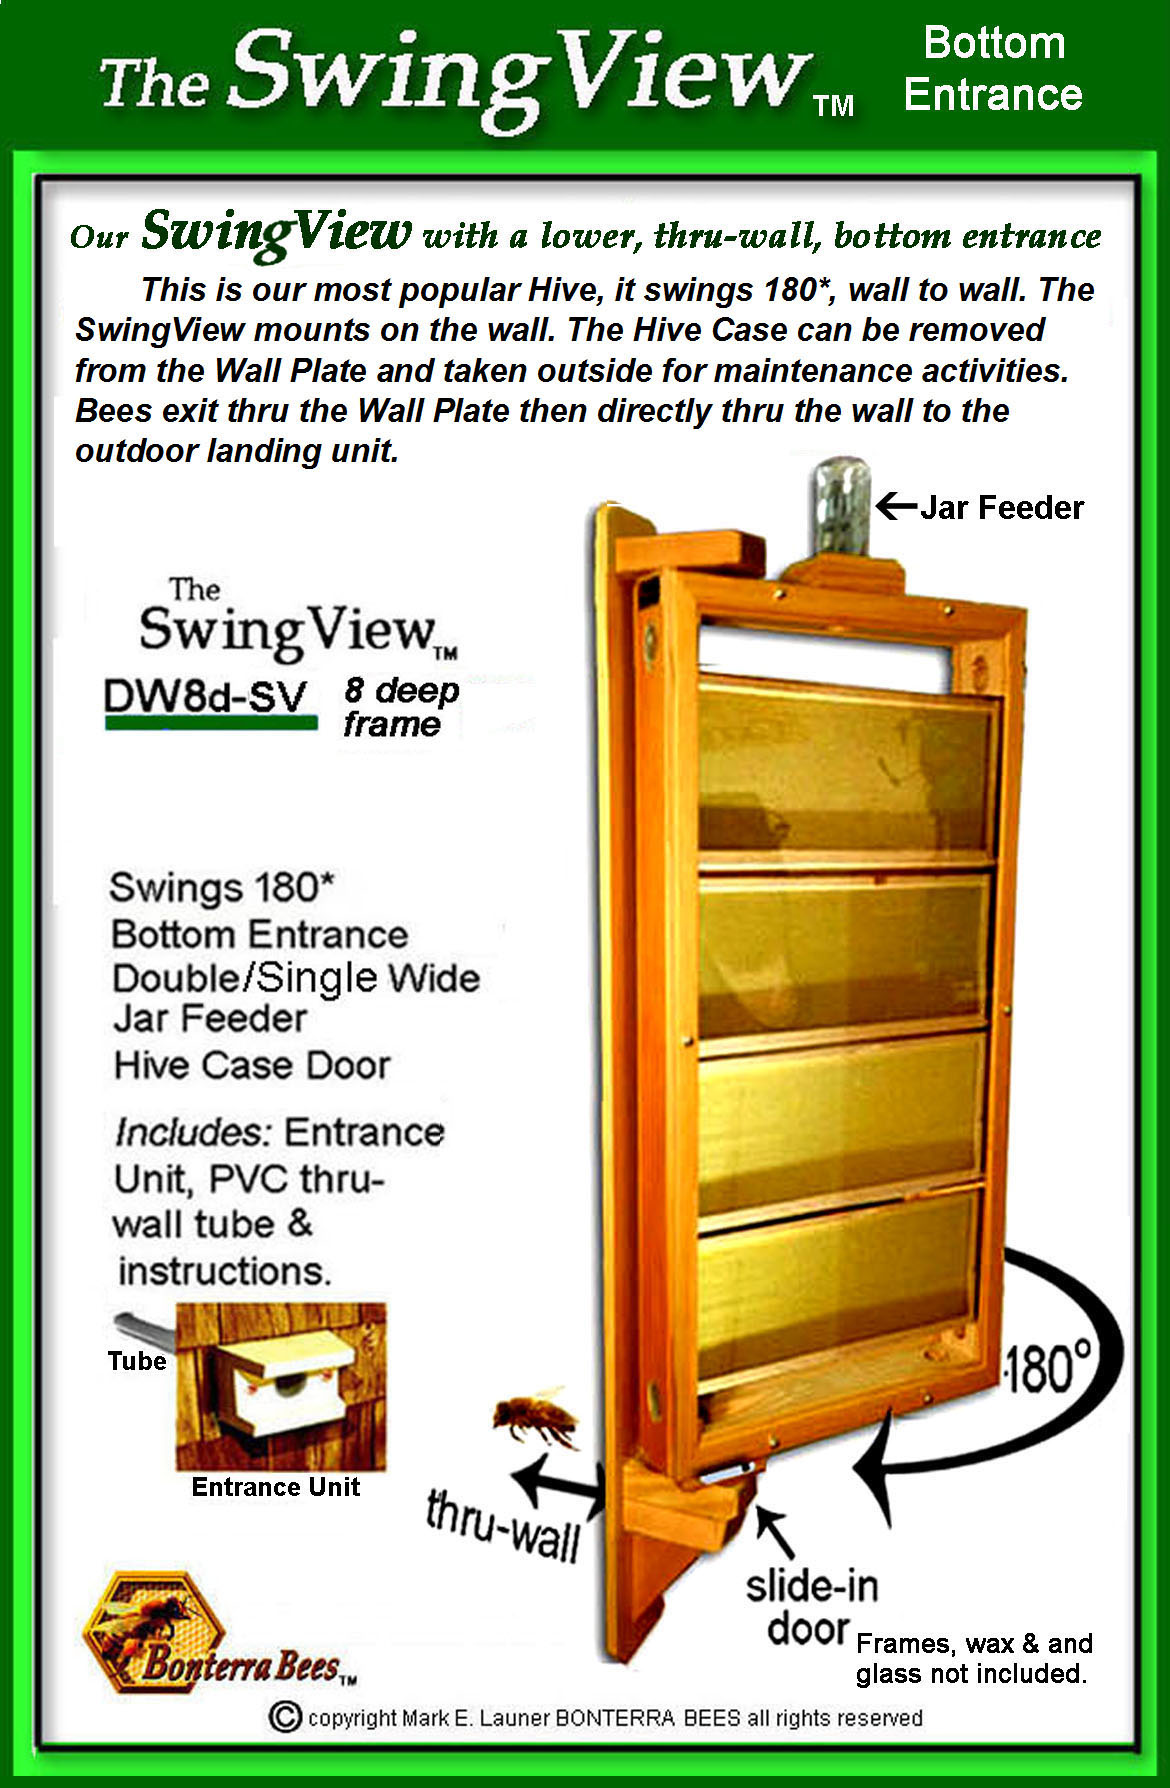 SwingView 8 deep frame Hive with a bottom entrance: DW8d-SV